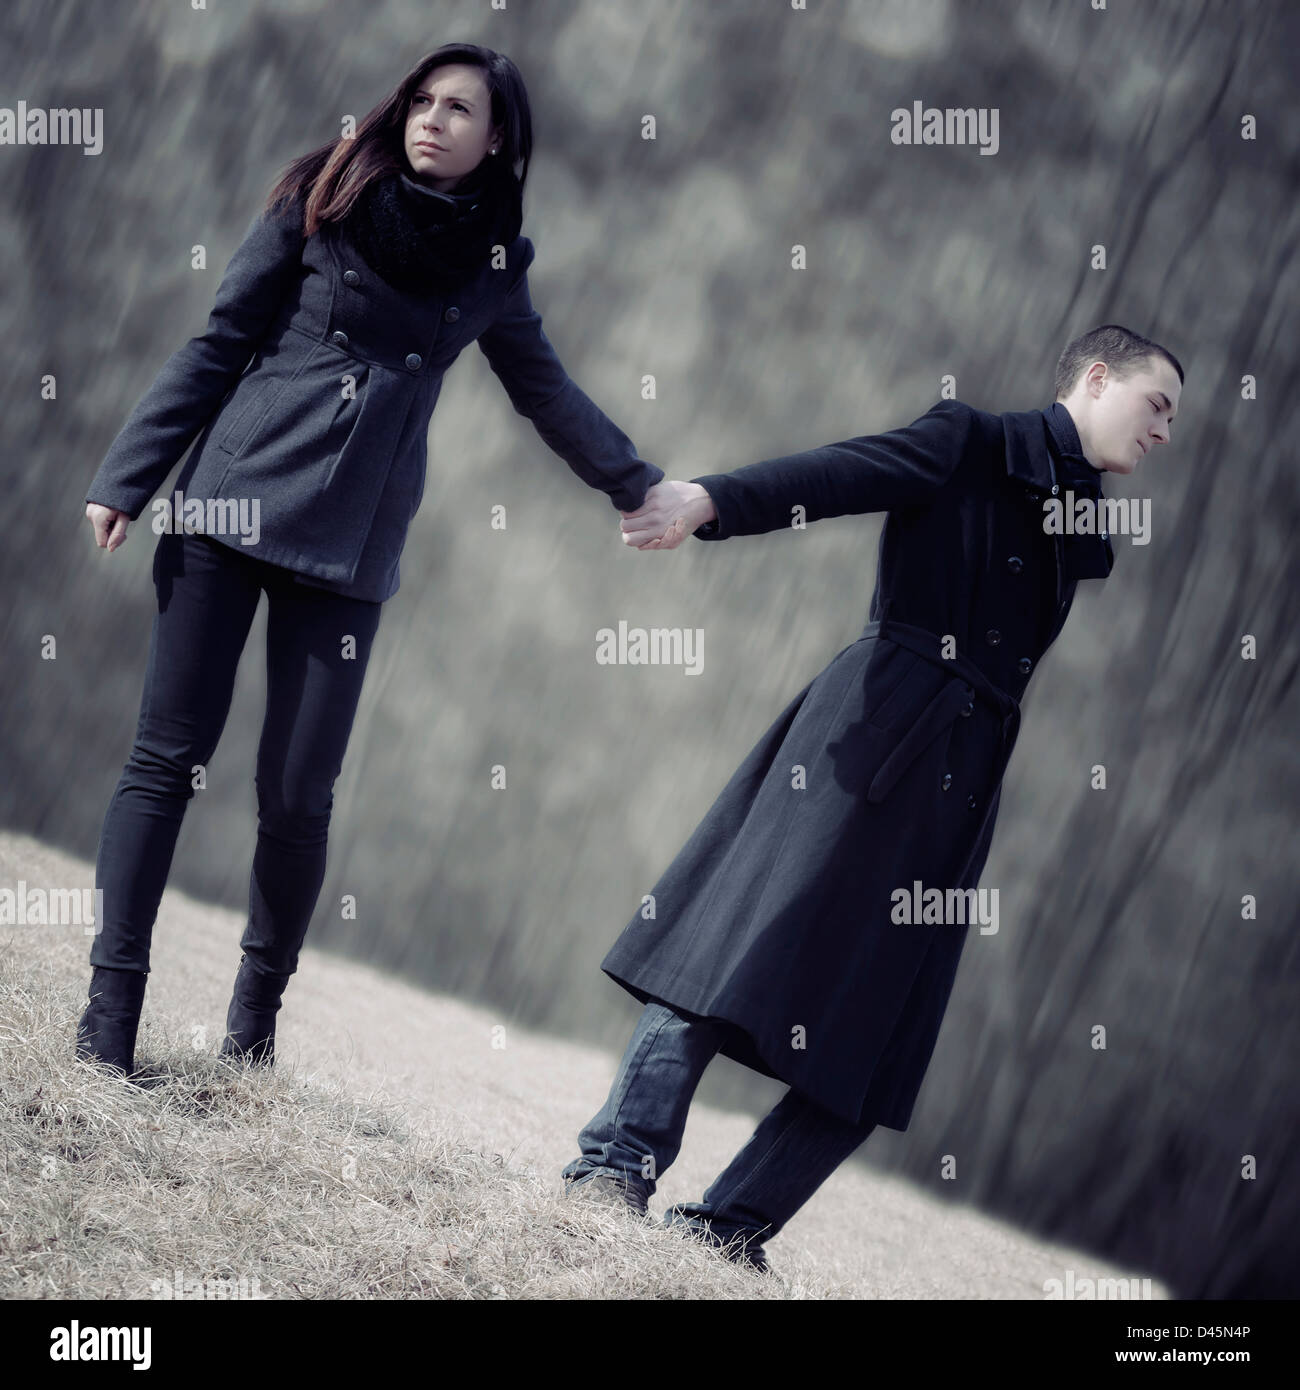 a man tries to hale his girlfriend, but she doesn't want - Stock Image